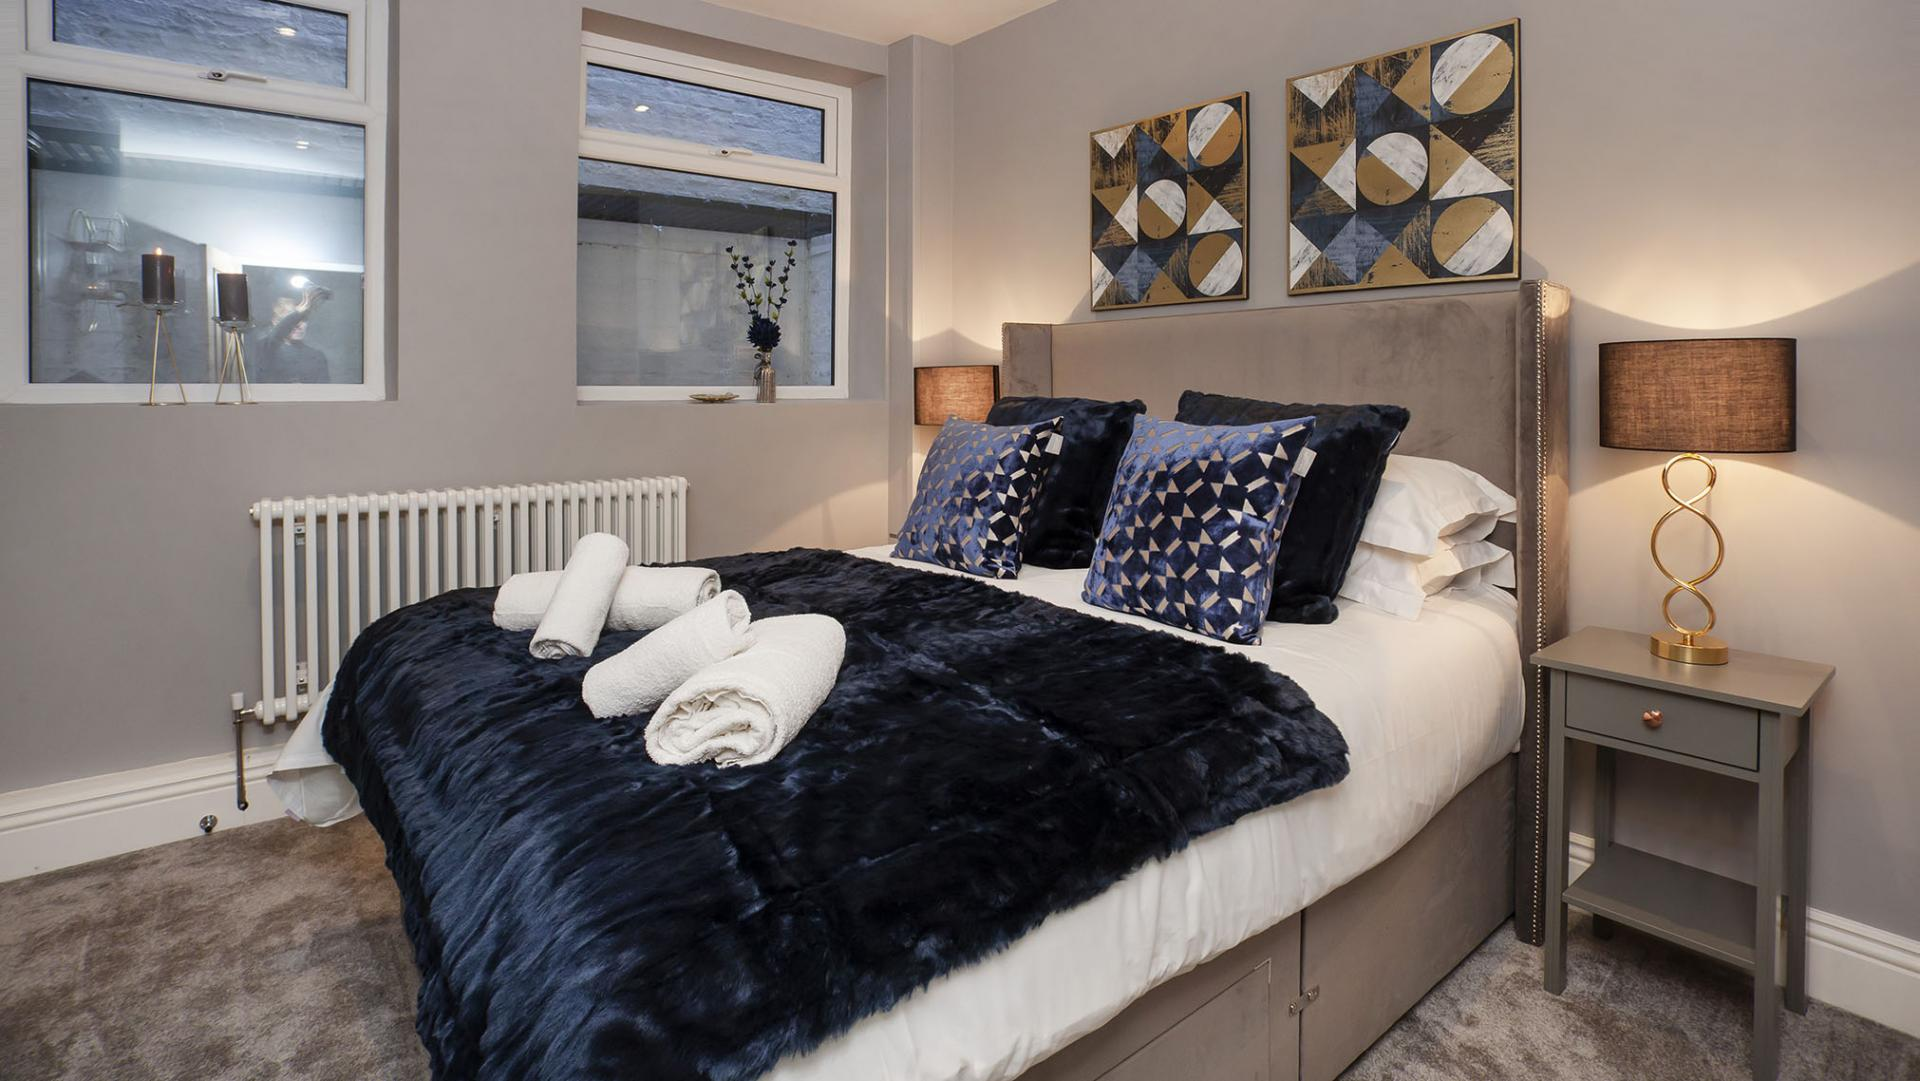 Comfy bedspread at Bootham Luxury Apartments - Citybase Apartments